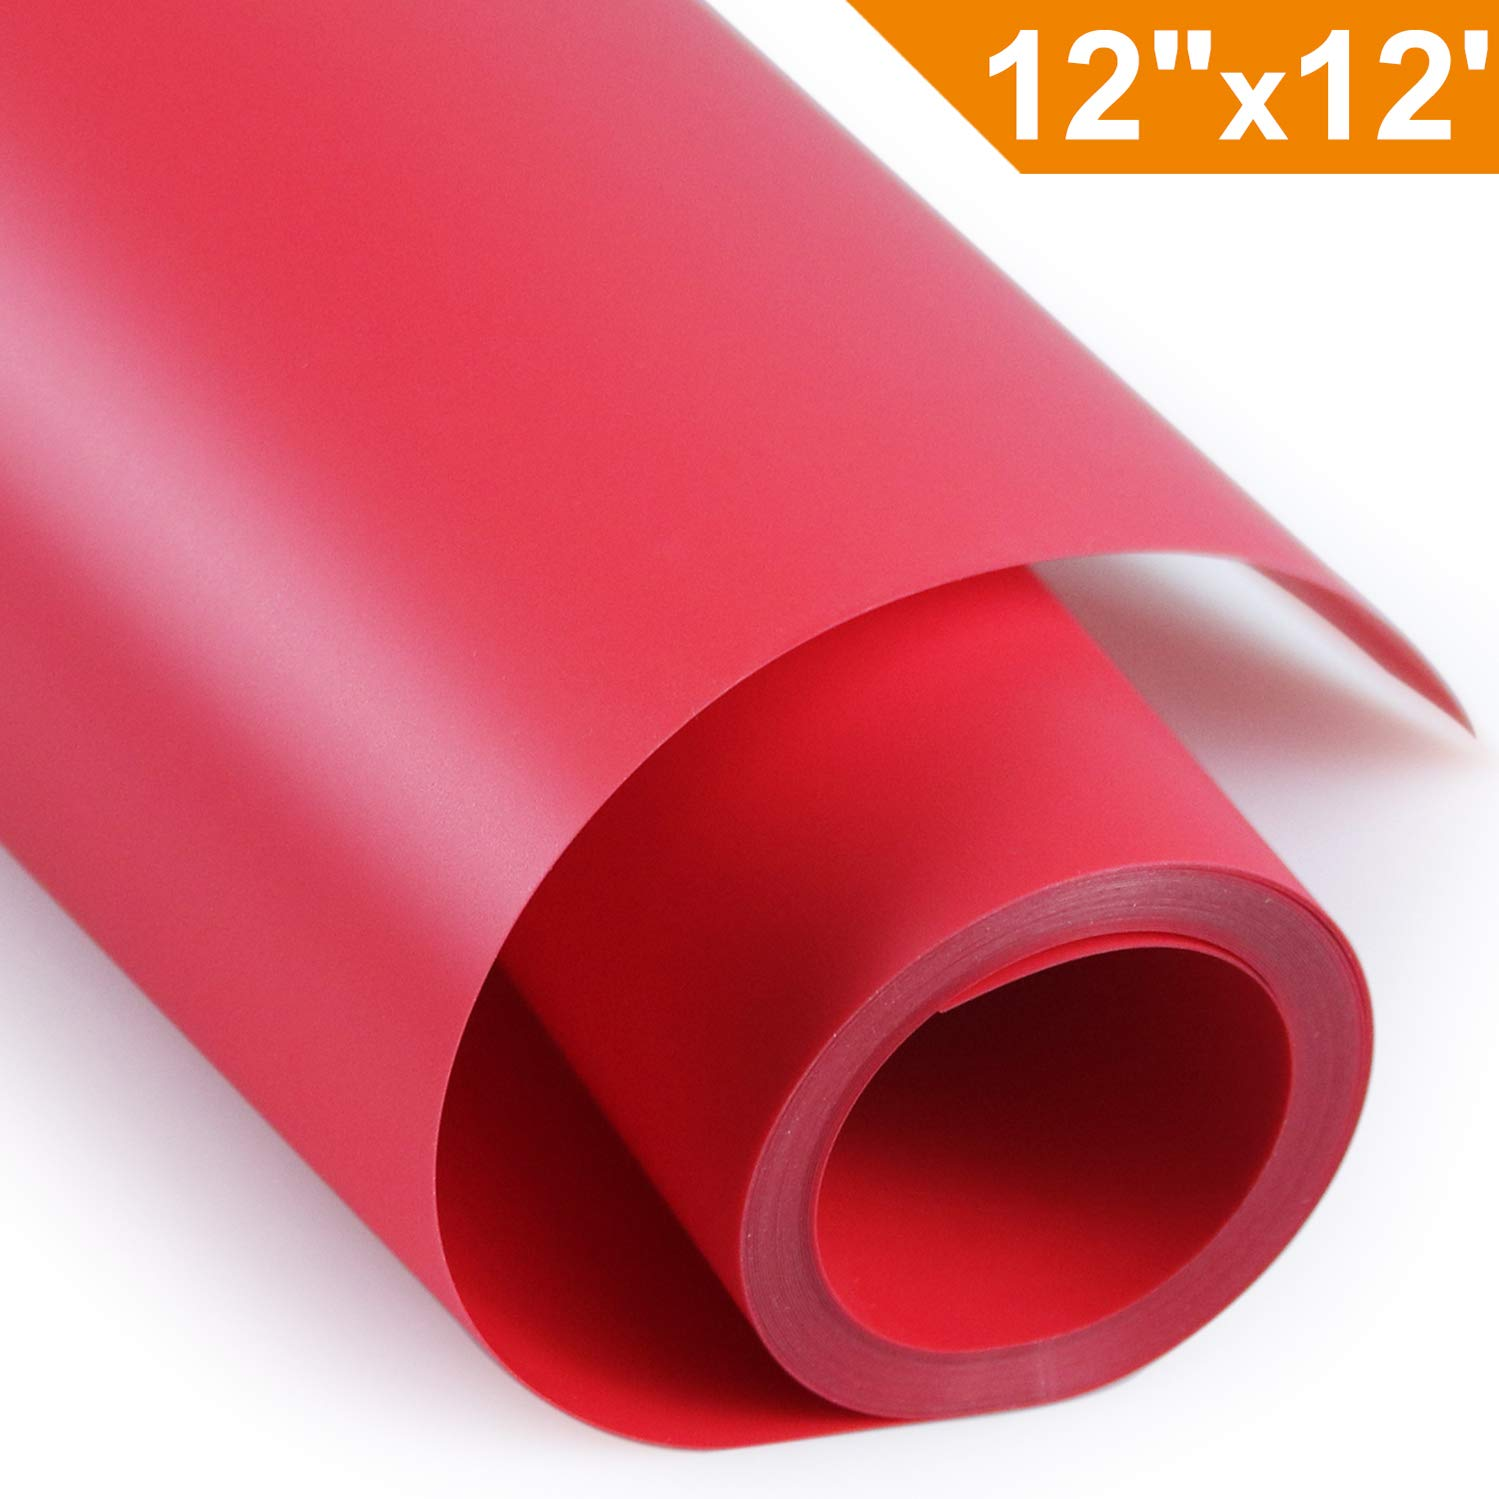 Heat Transfer Vinyl HTV for T-Shirts 12 Inches by 12 Feet Rolls Black